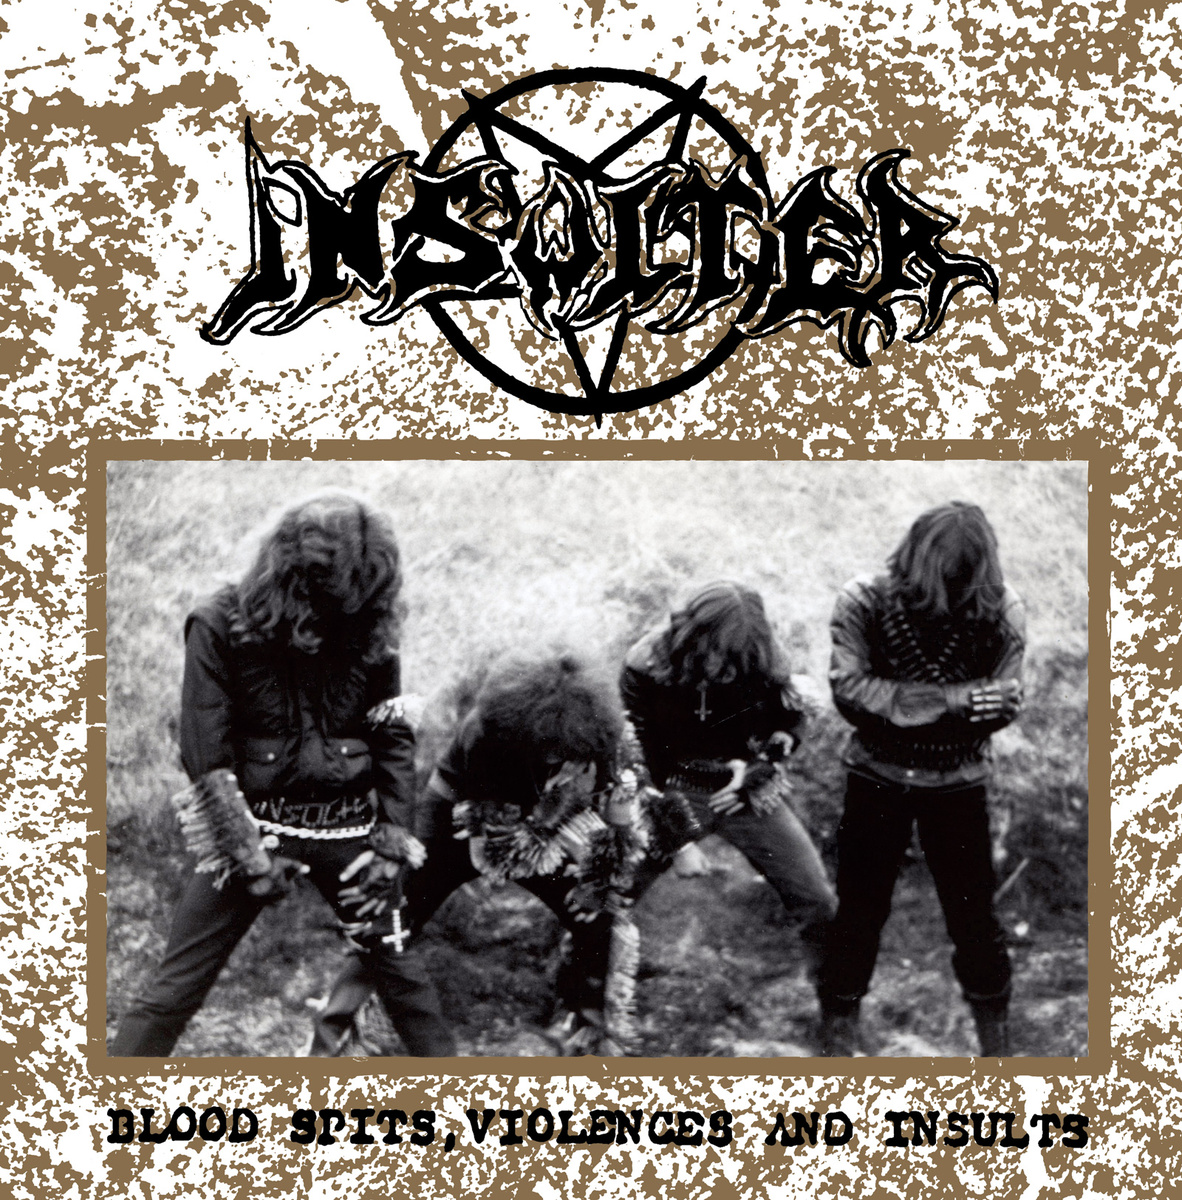 Cult To Our Darkest Past Insulter Quot Blood Spits Violence